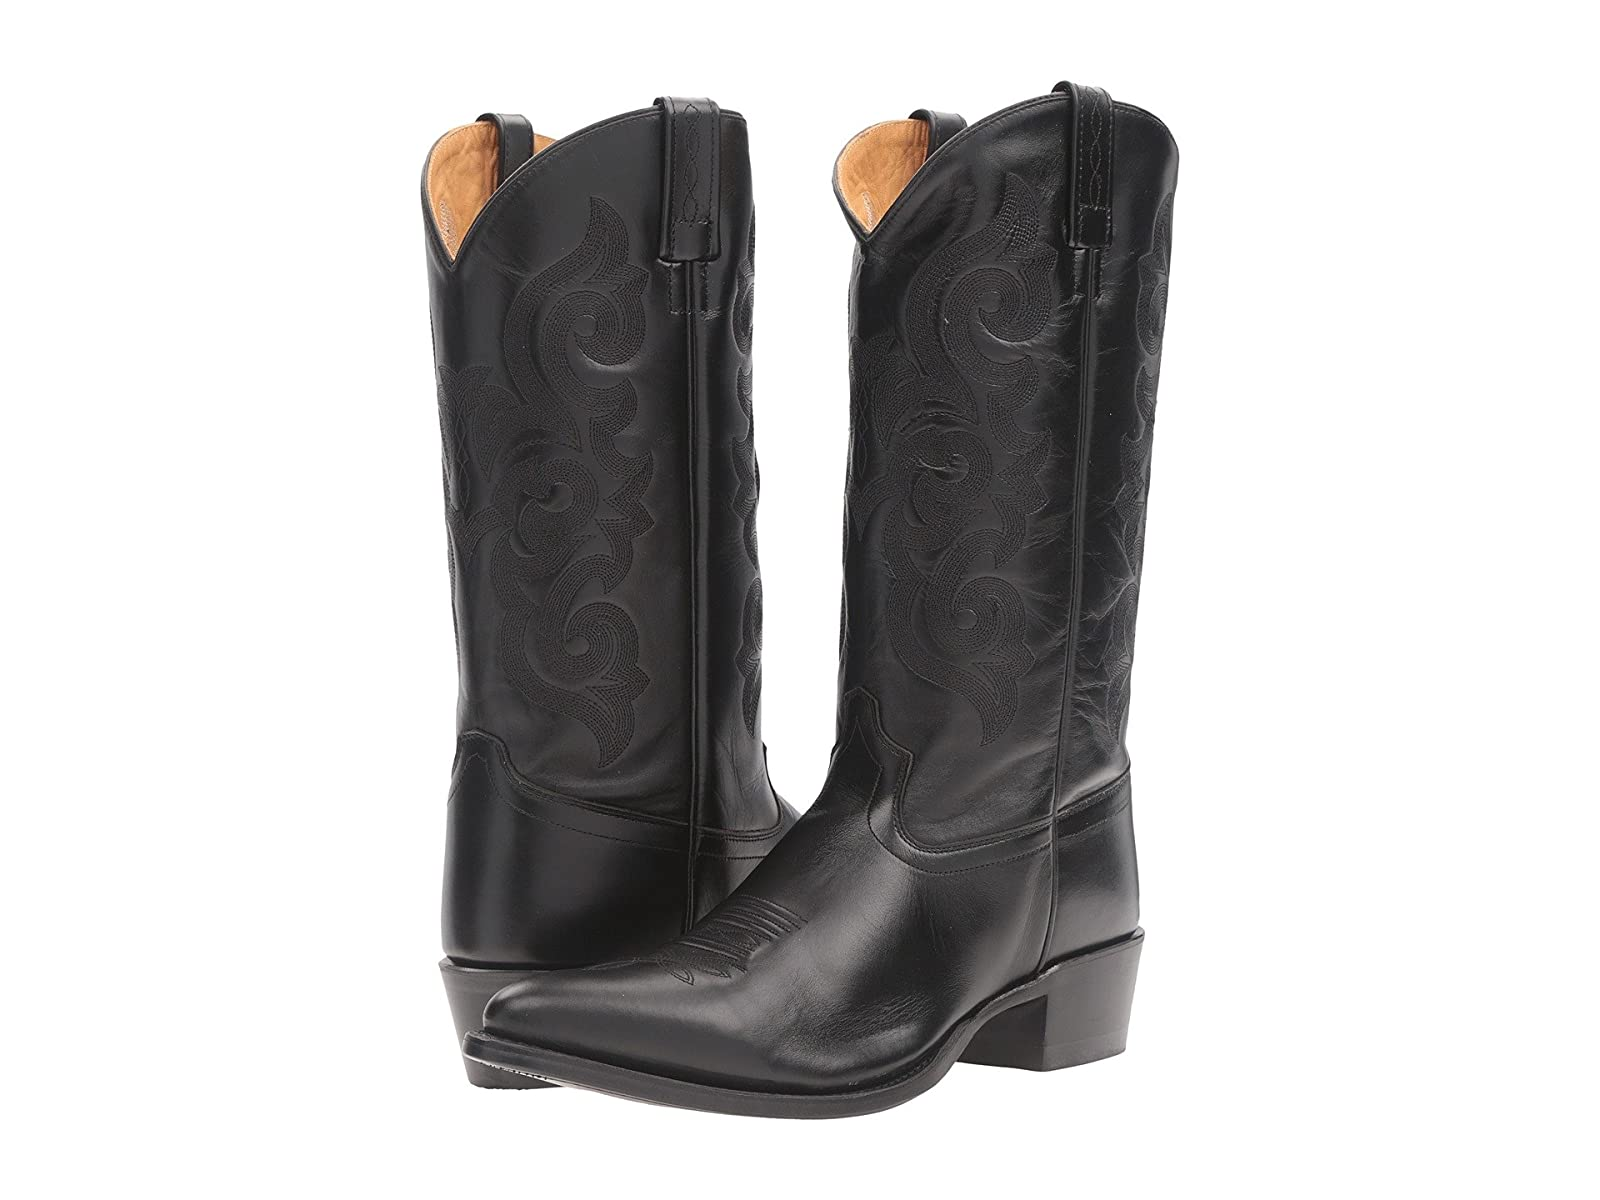 Old West Boots 5502Economical and quality shoes